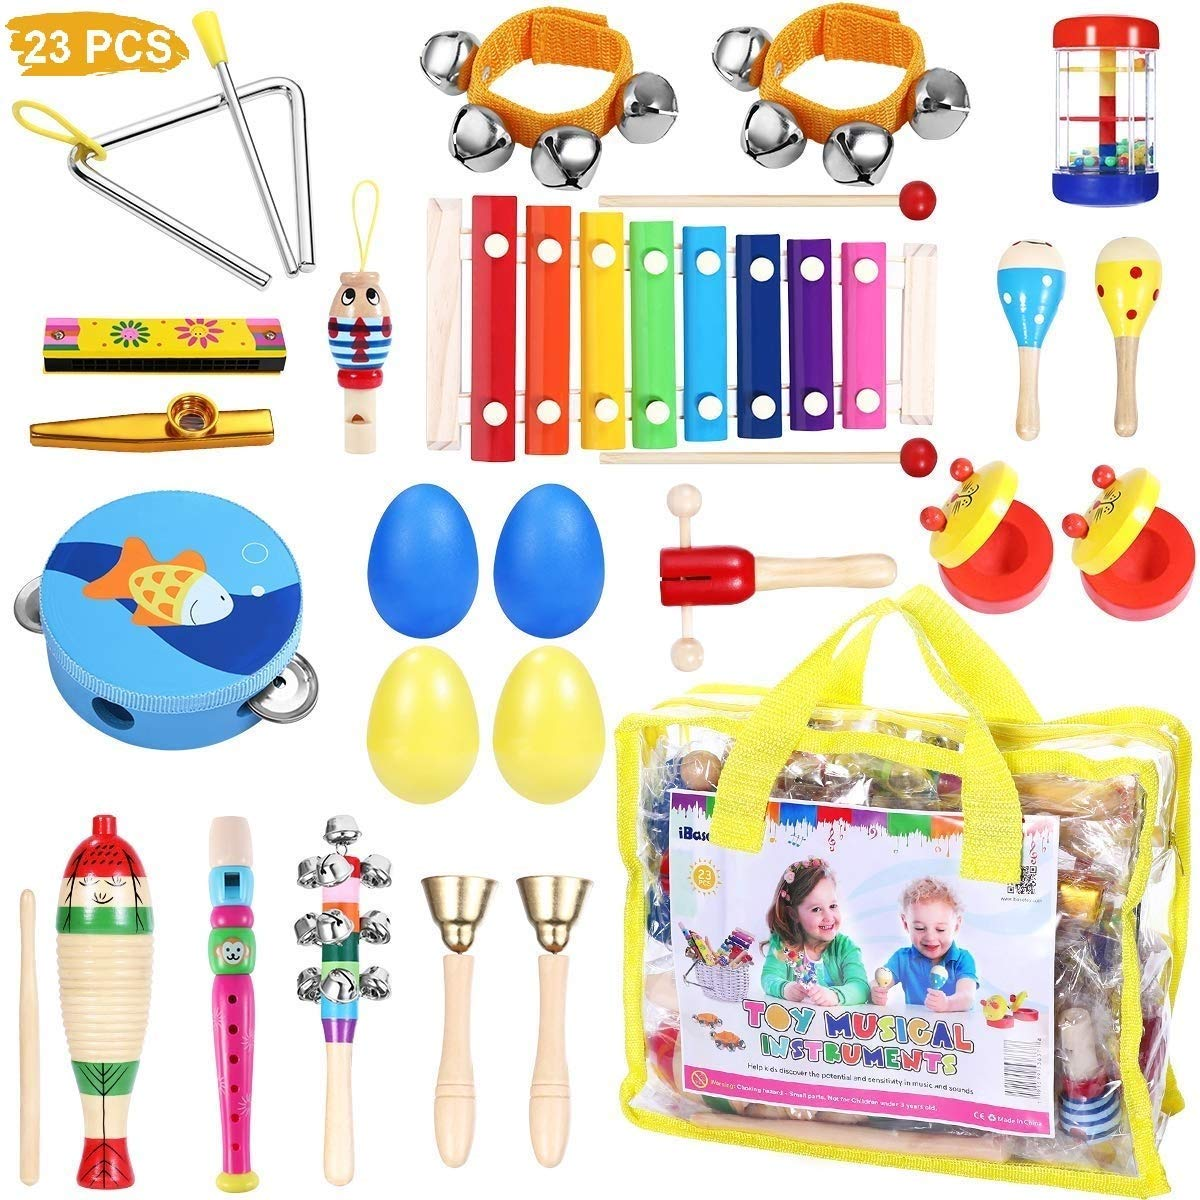 Toddler Musical Instruments - iBaseToy 23Pcs 16Types Wooden Percussion Instruments Tambourine Xylophone Toys